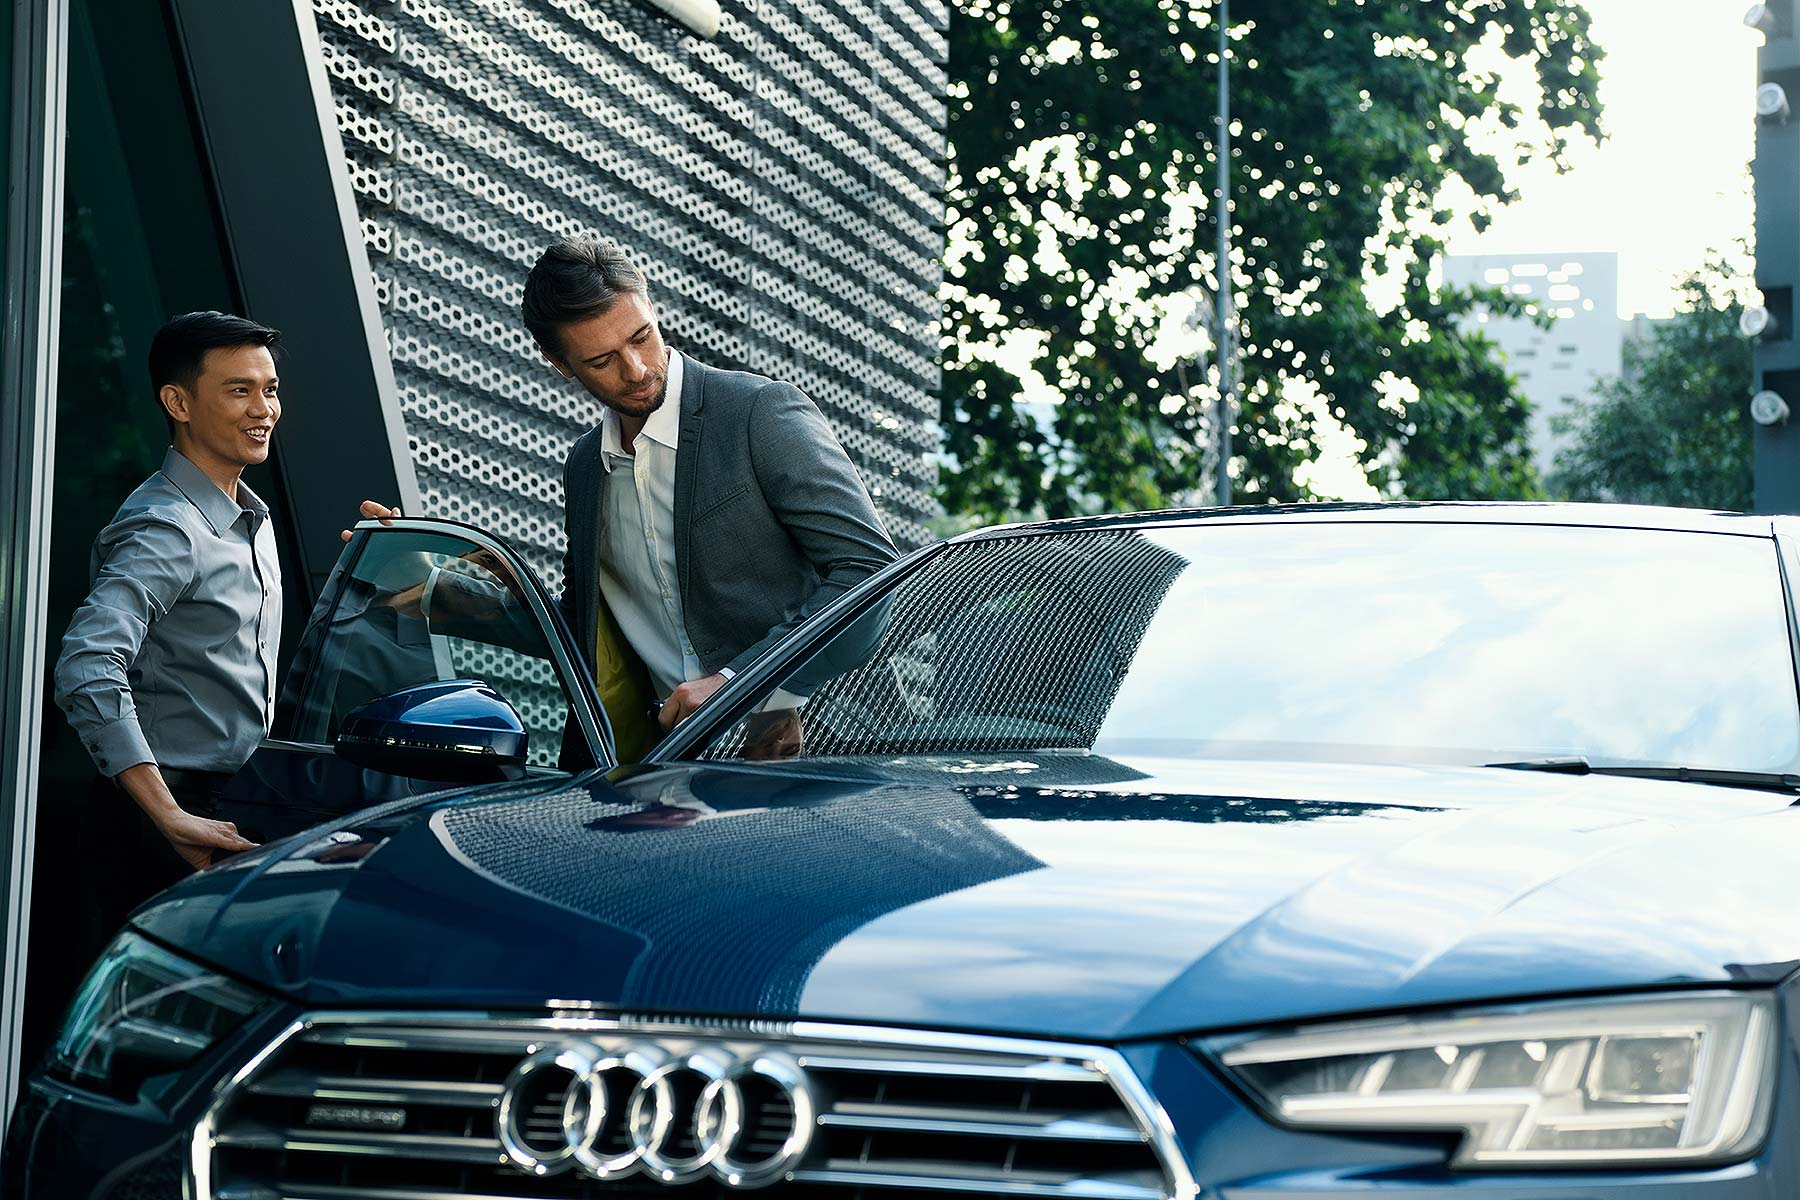 Audi On Demand Hire A New Car From One Hour To Days - Audi uk